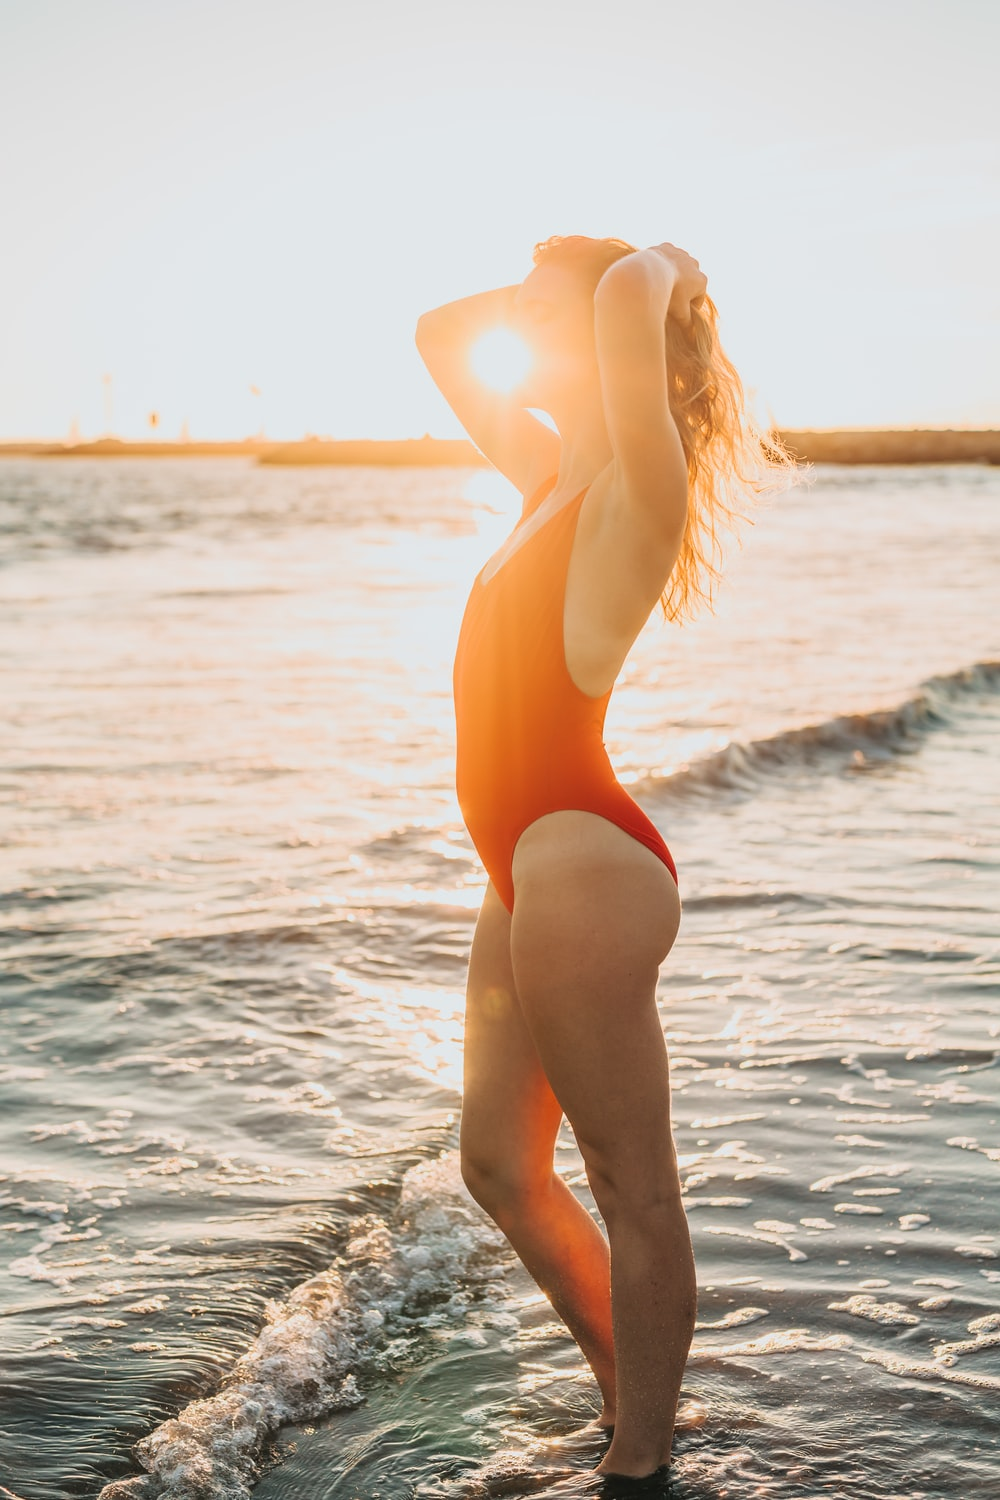 woman wearing red one-piece swimsuit standing on beach water